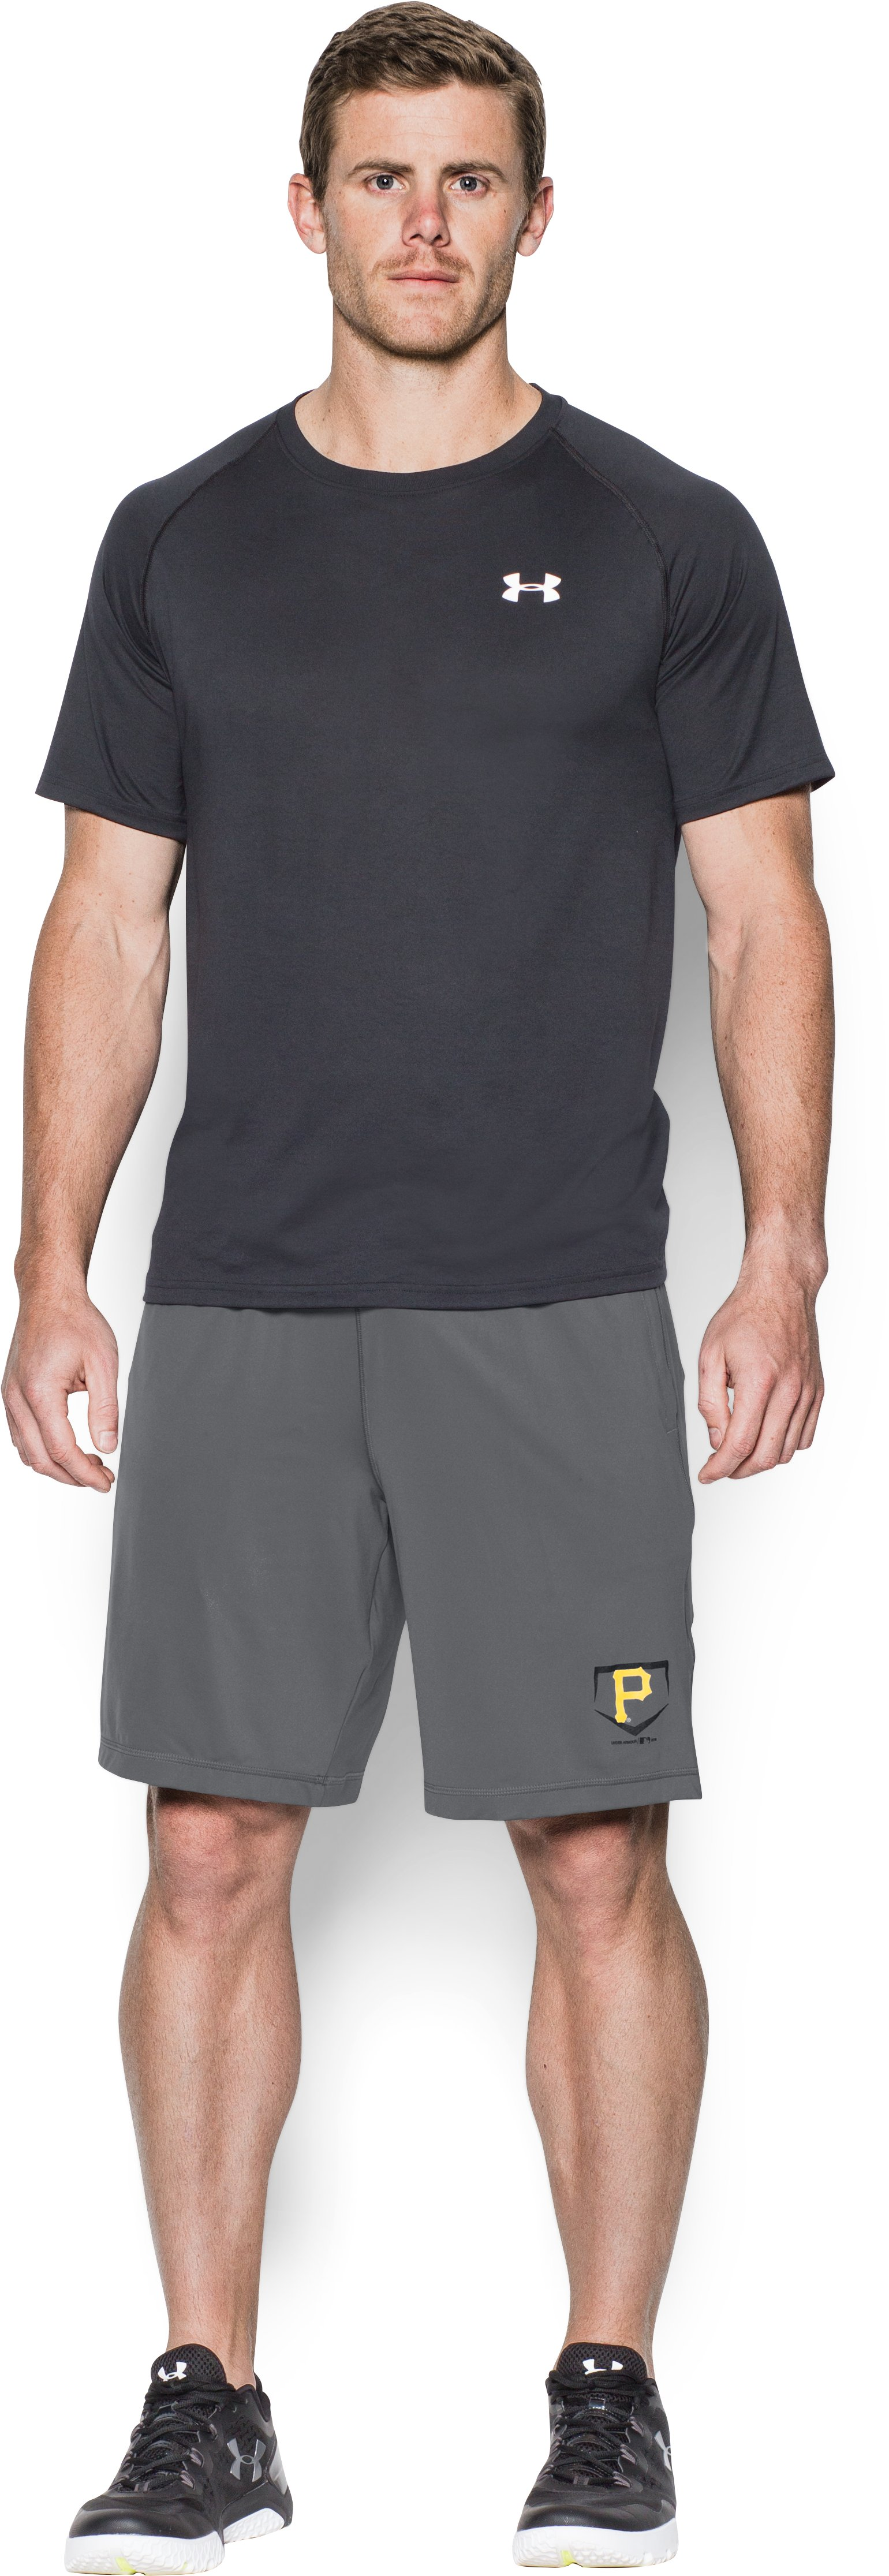 Men's Pittsburgh Pirates Raid Shorts, Graphite